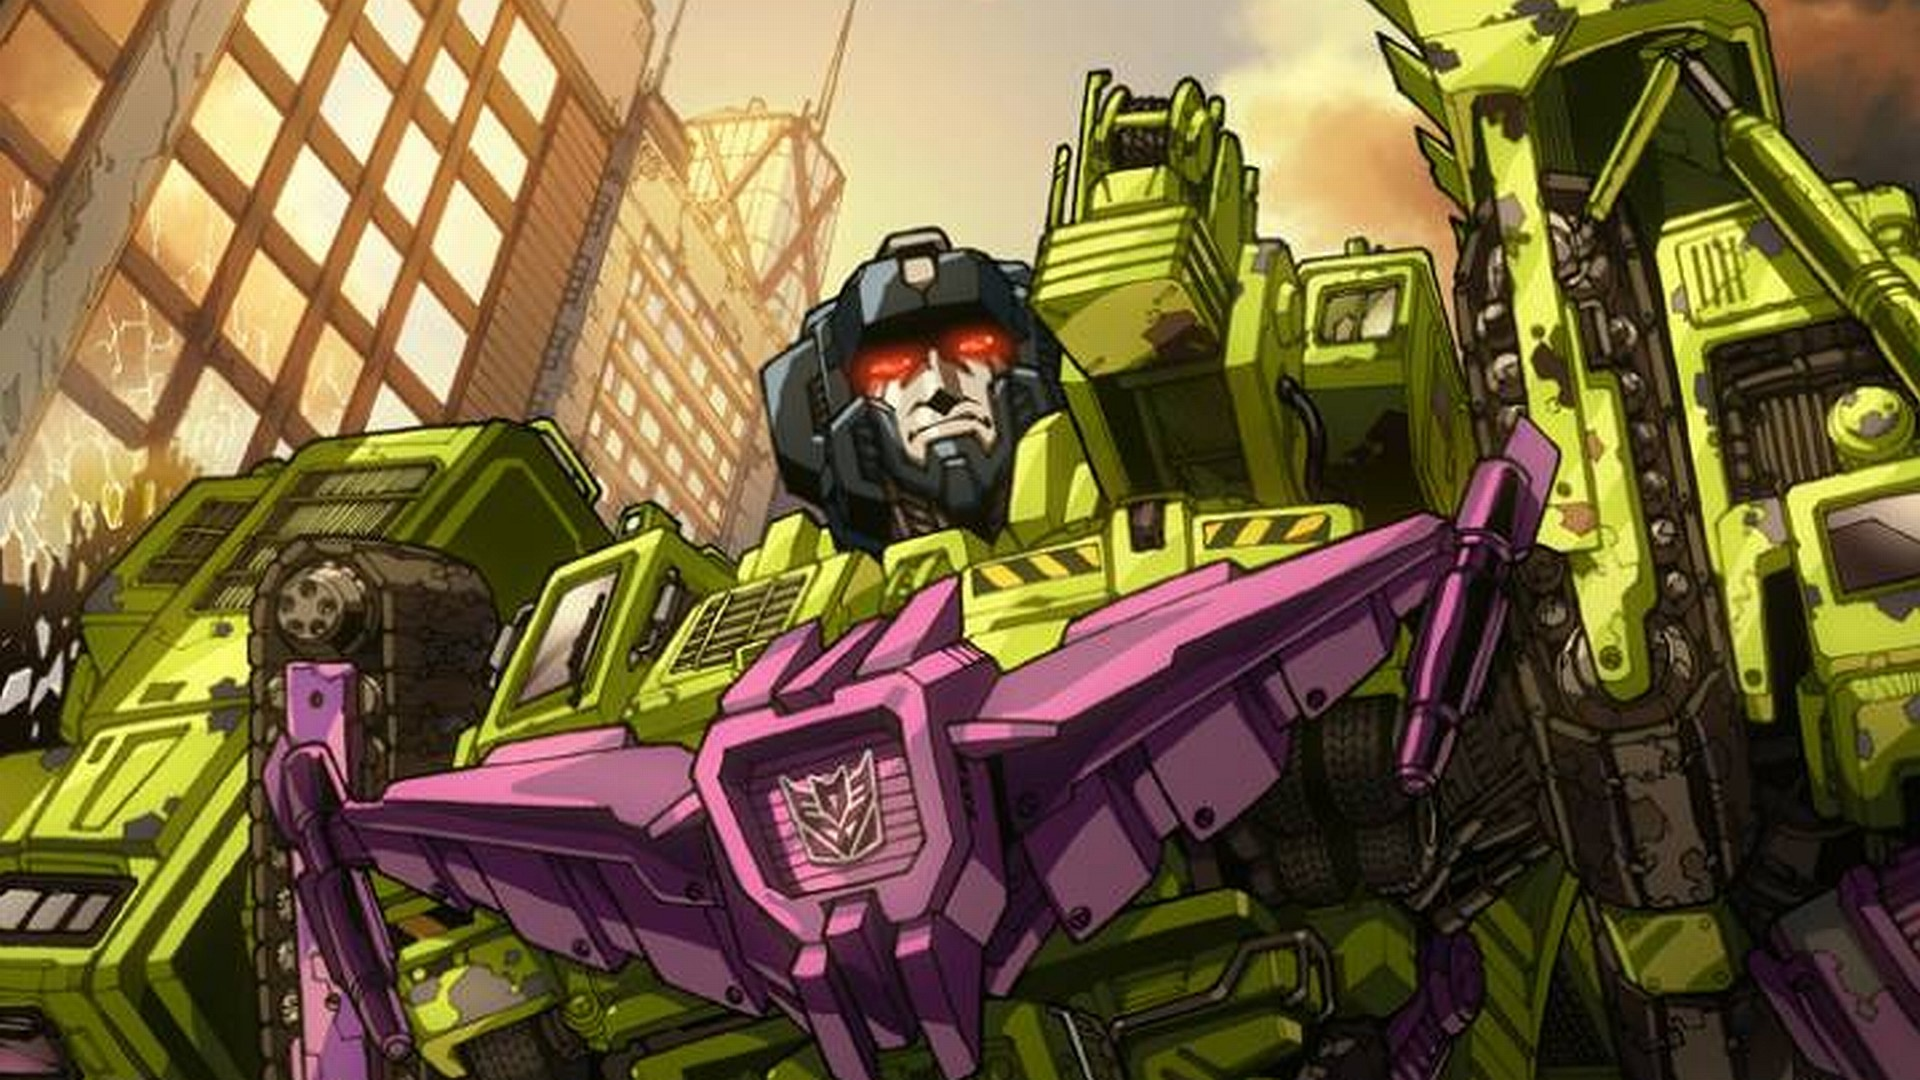 Free transformers wallpaper background